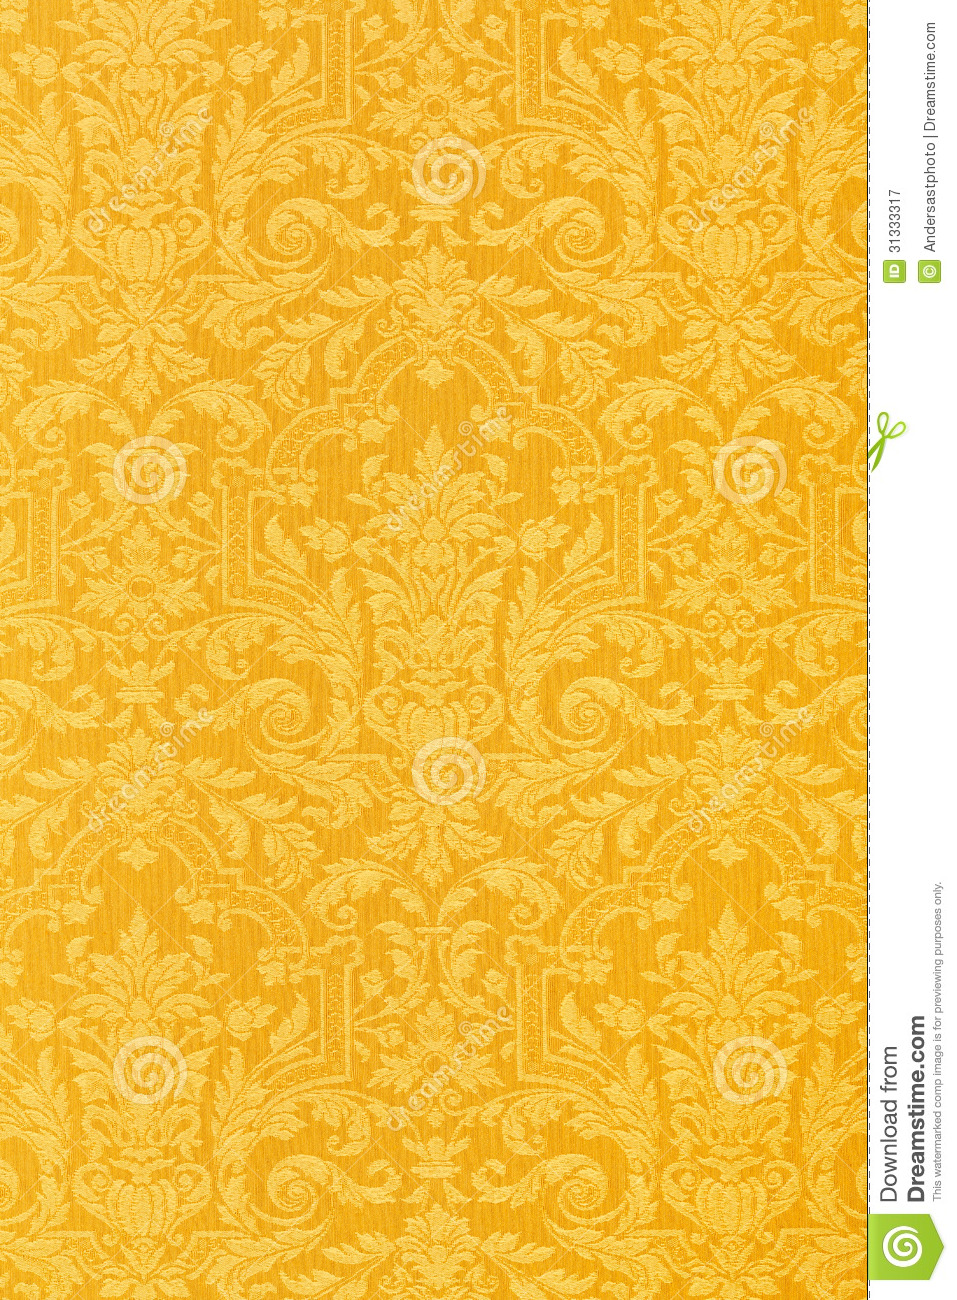 download textures gold floral - photo #45